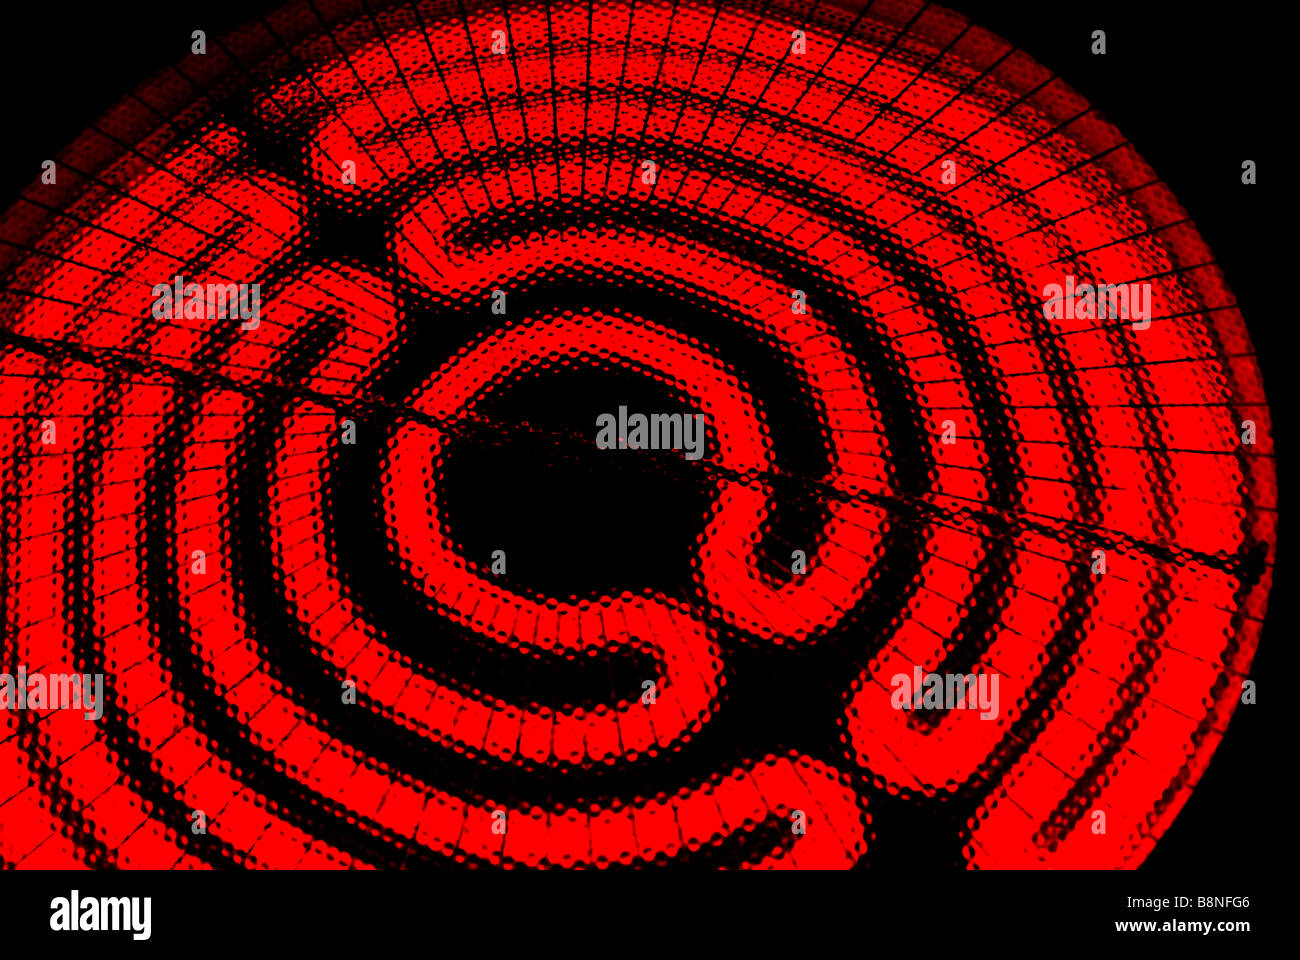 Glowing red, hot,  electric range cooktop burner heating element coil . - Stock Image